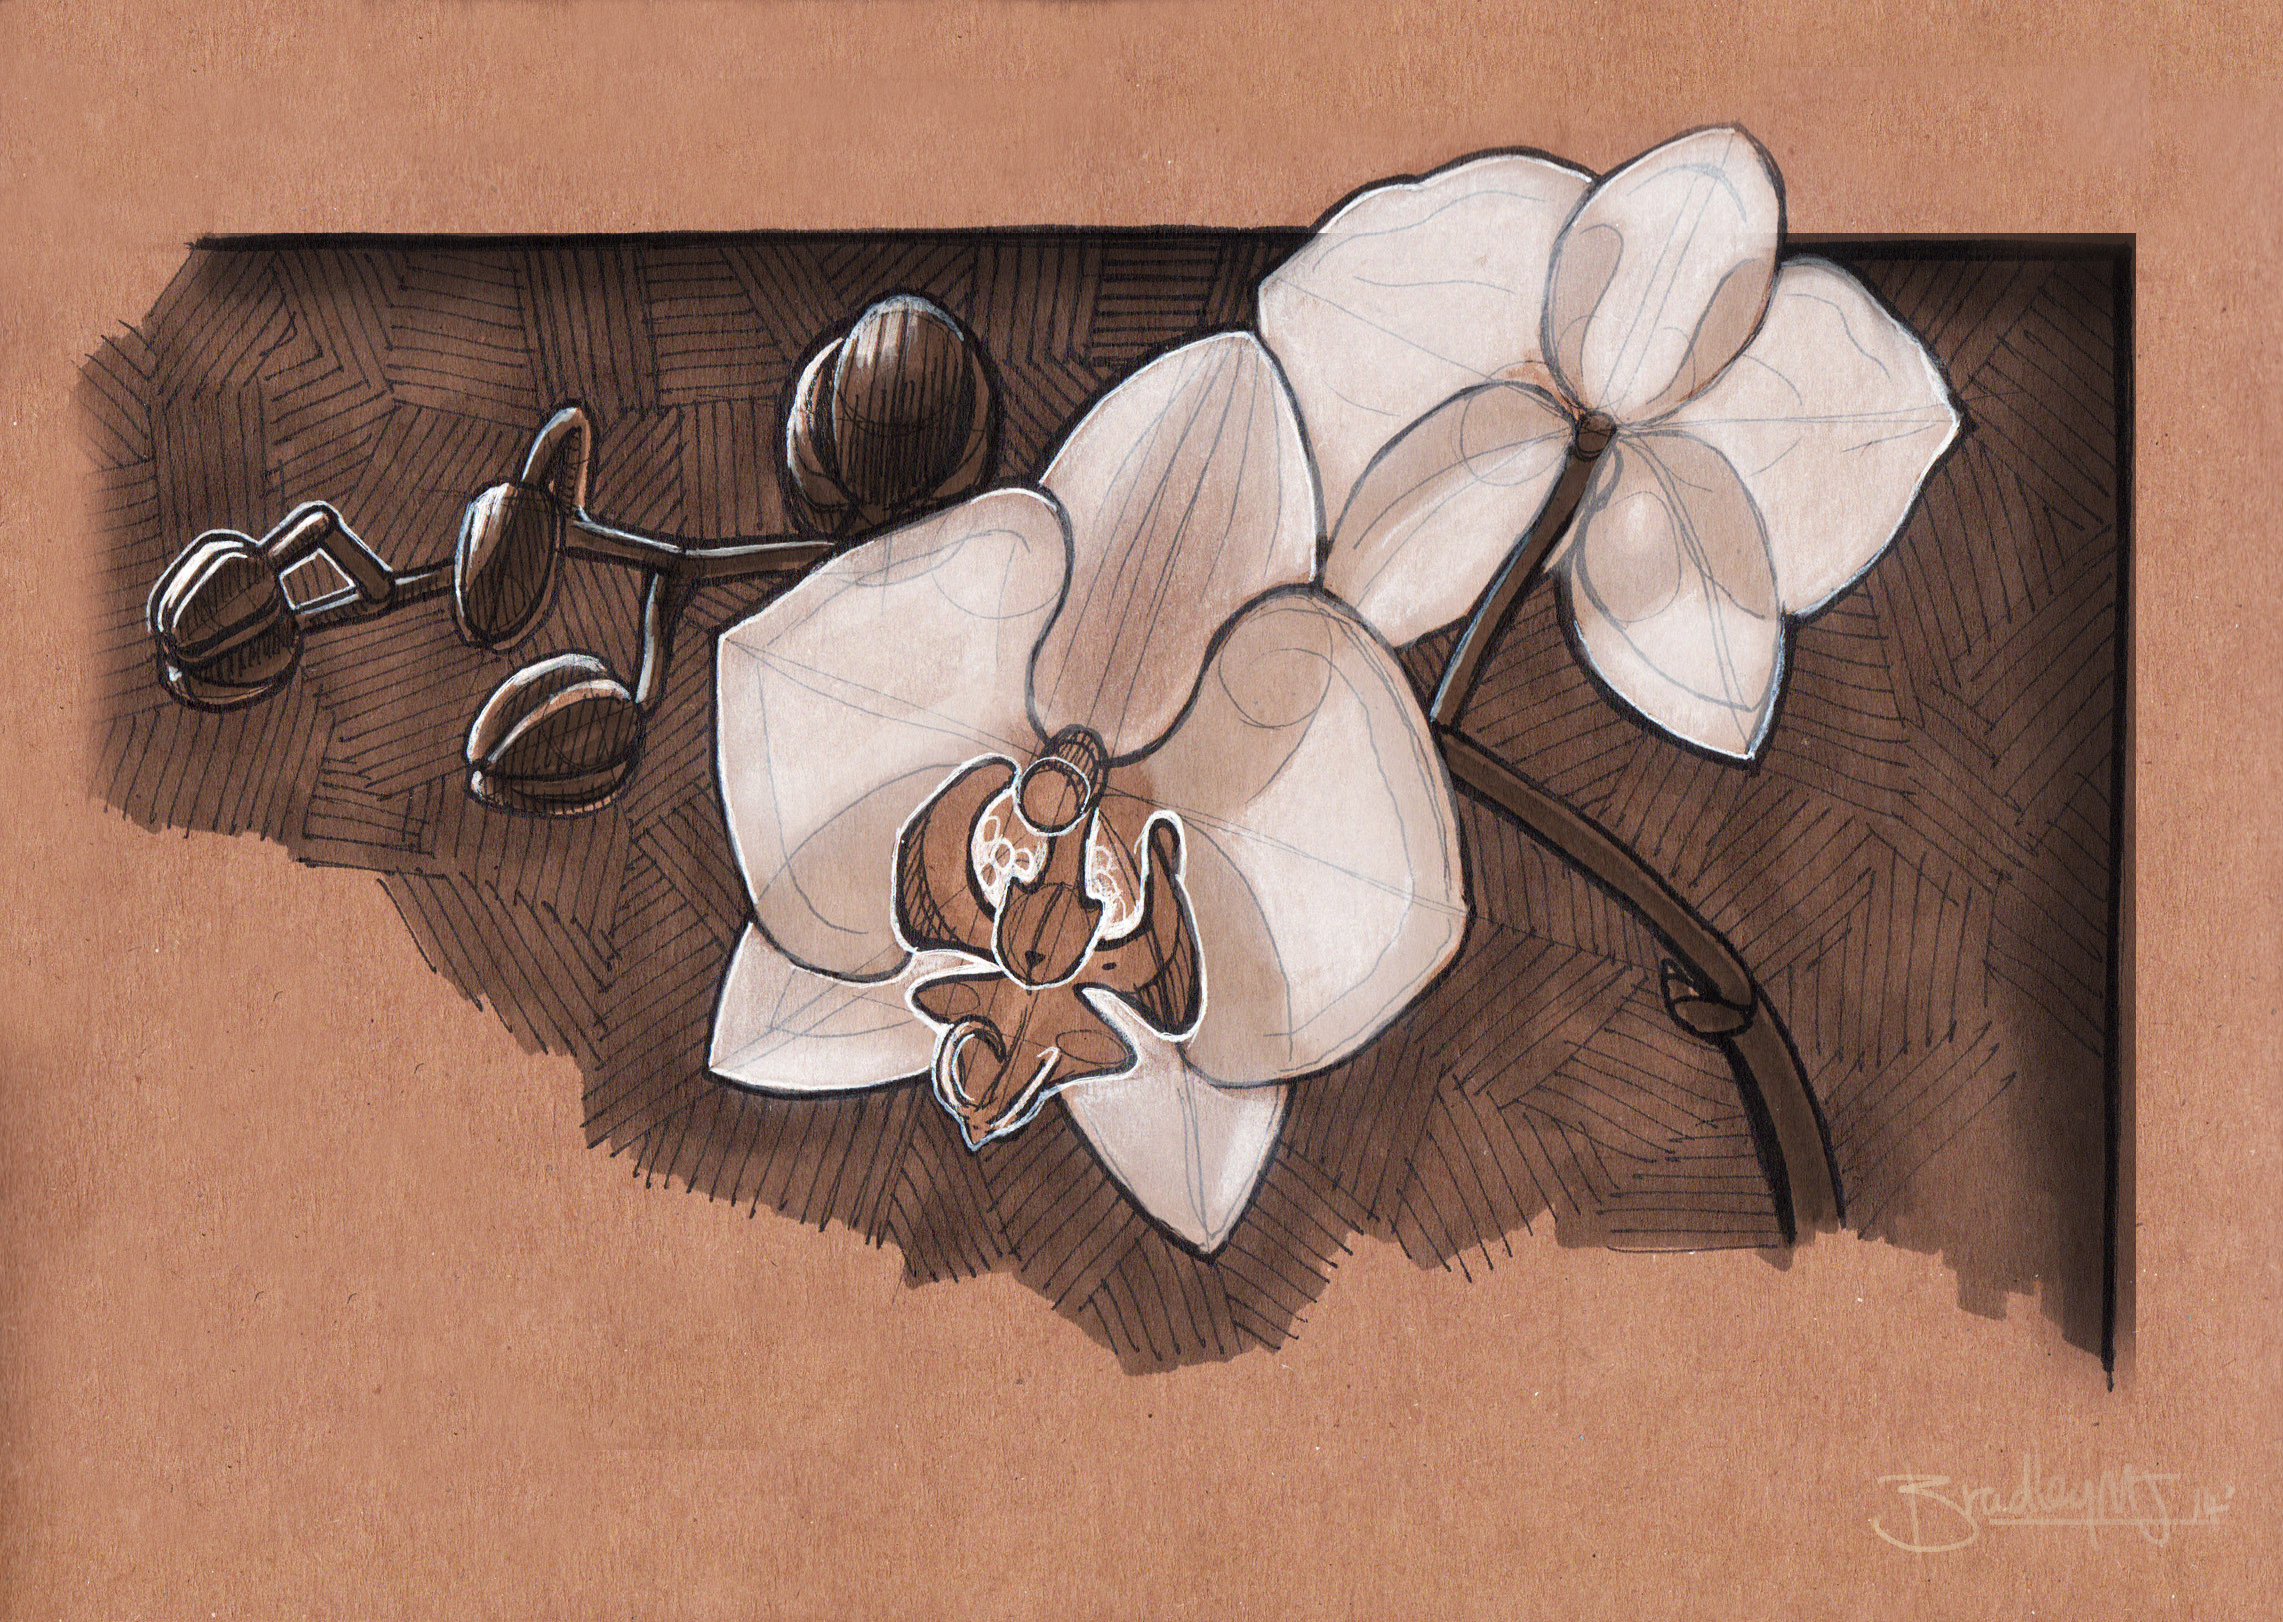 Orchid Flower Study from life, finished in studio